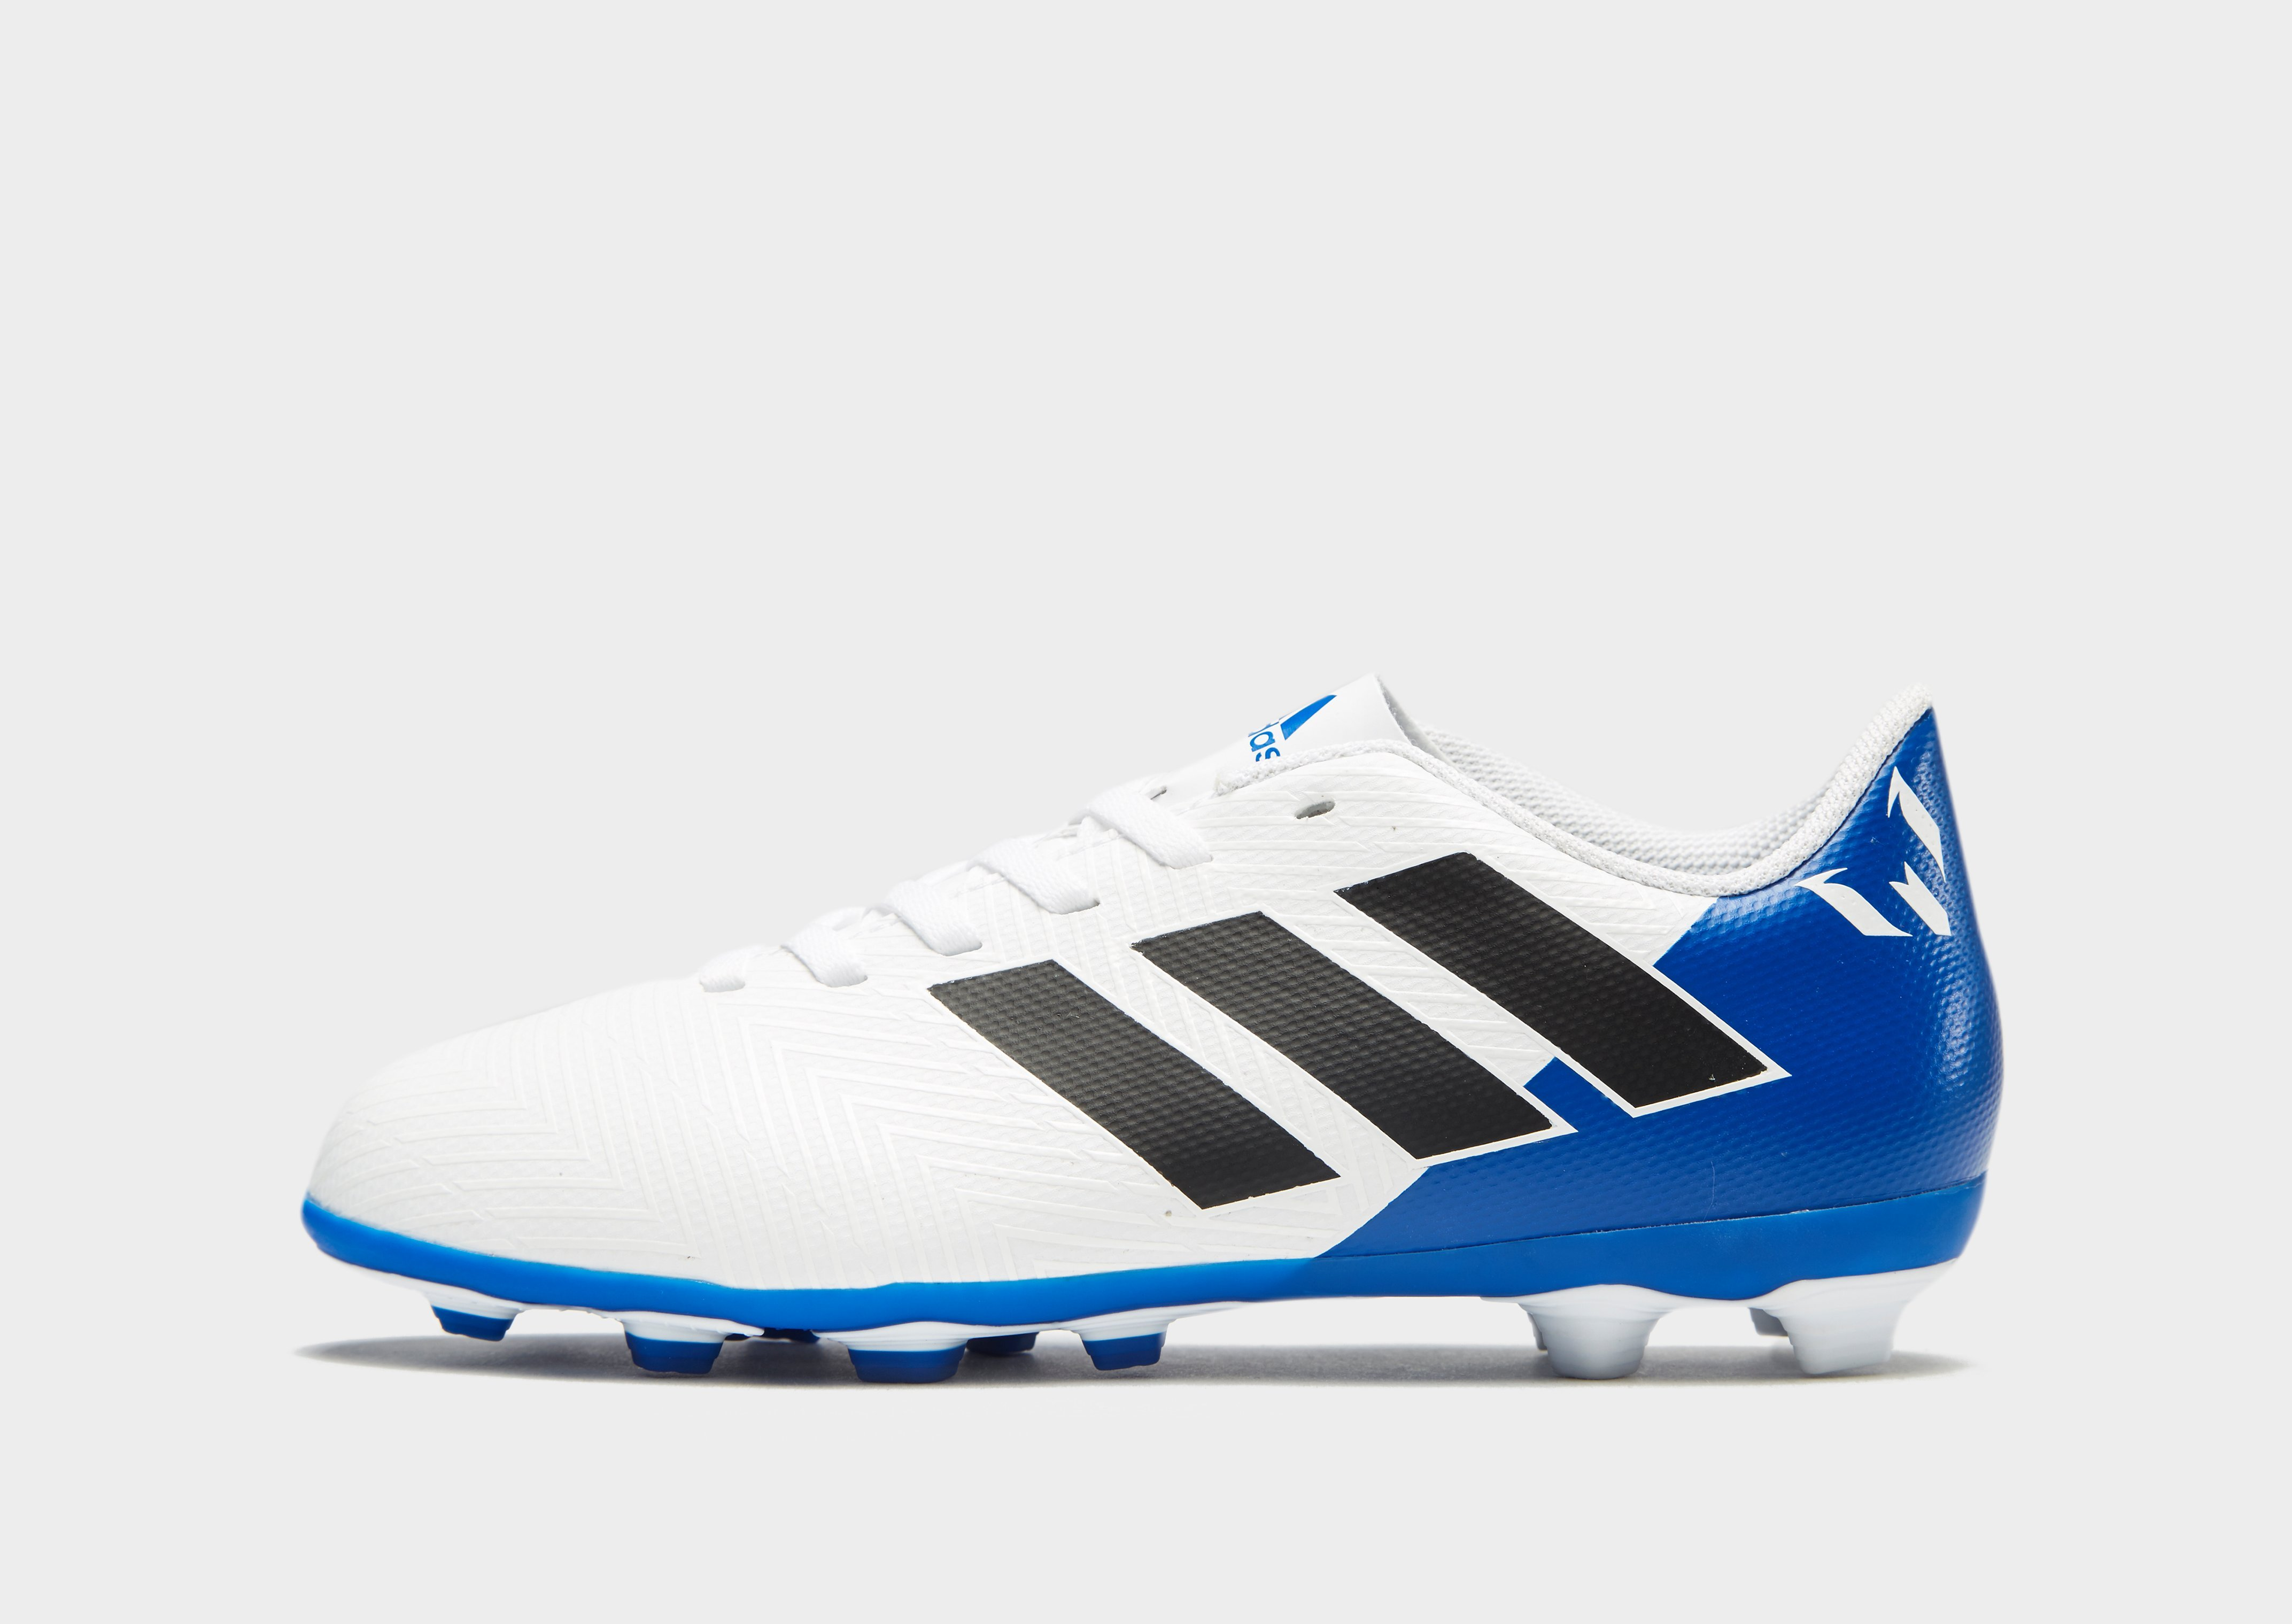 5c61a5fdd adidas Team Mode Nemeziz Messi 18.4 FG Children